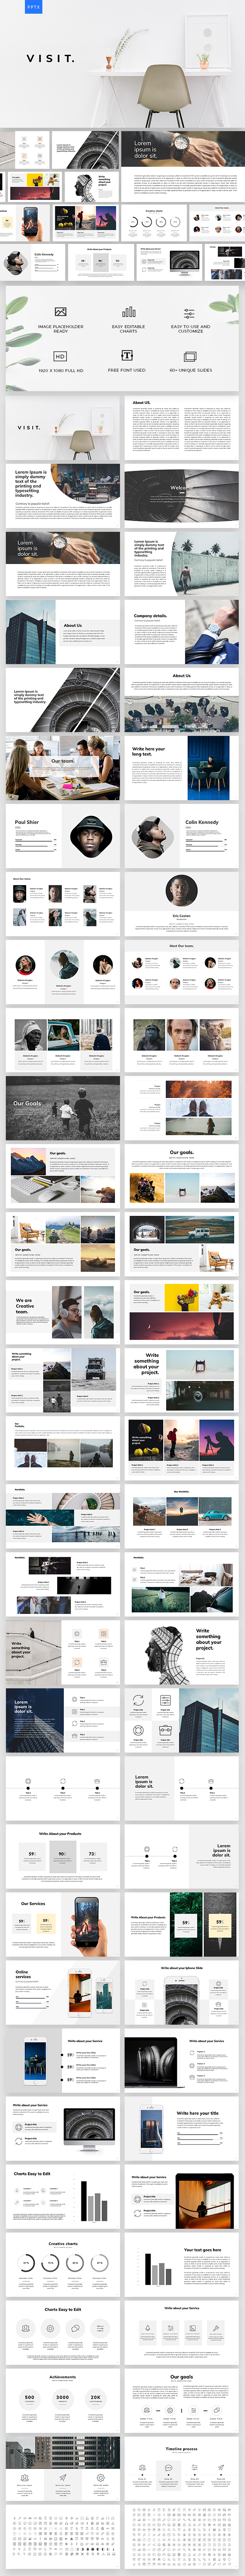 Visit Powerpoint Template - PowerPoint Templates Presentation Templates